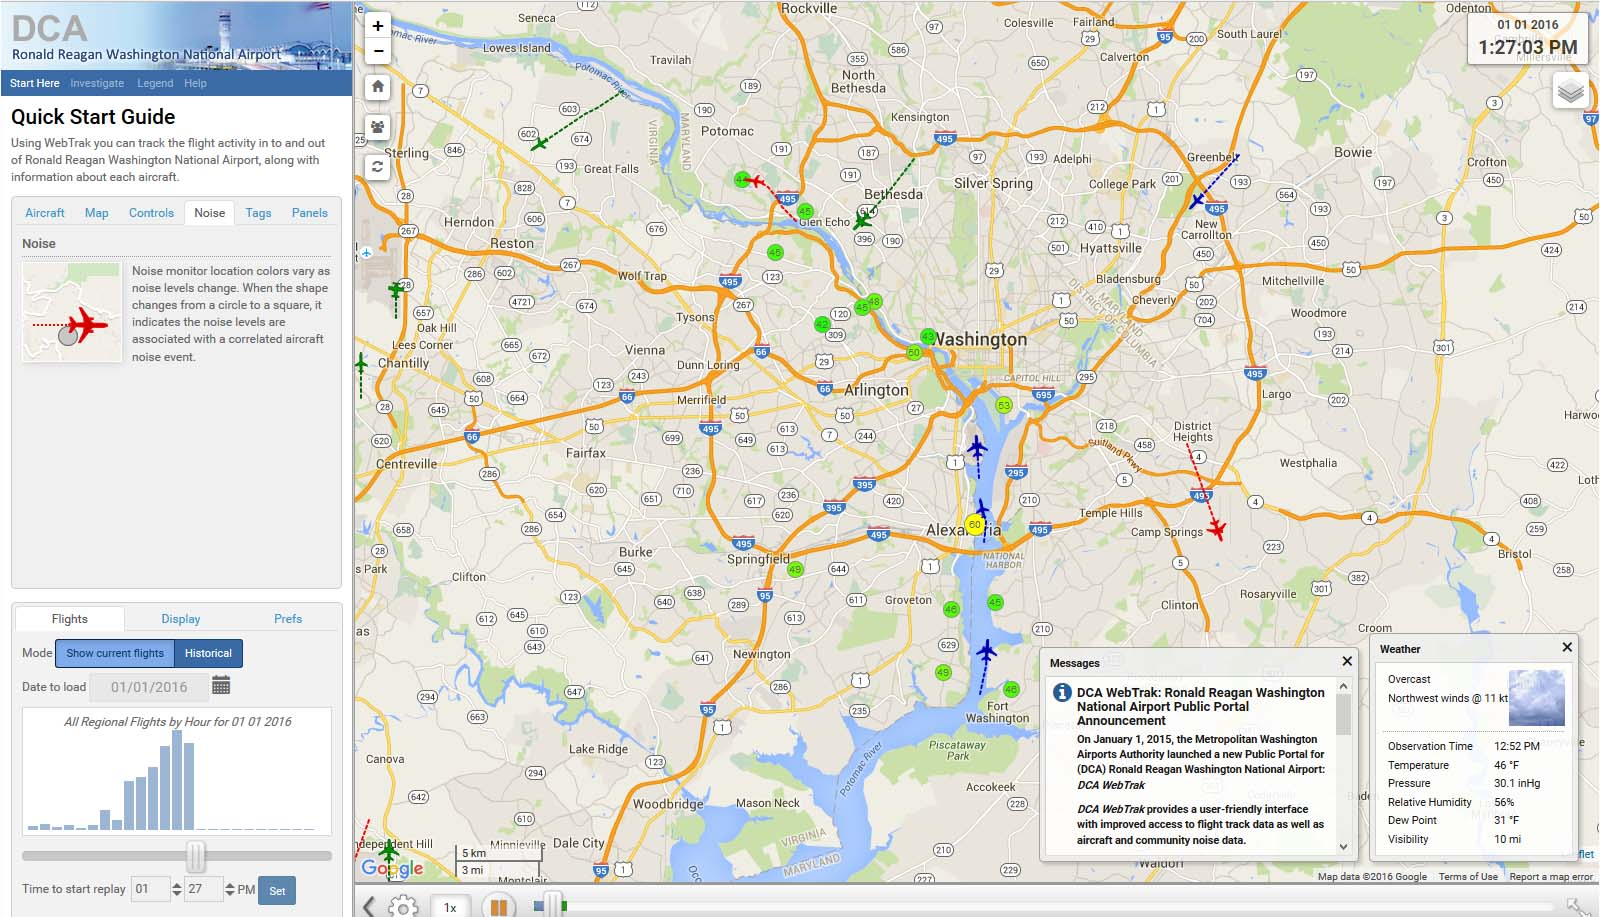 DCA WebTrak lets you track flight activity into and out of Reagan National Airport and monitor aircraft and community noise data.